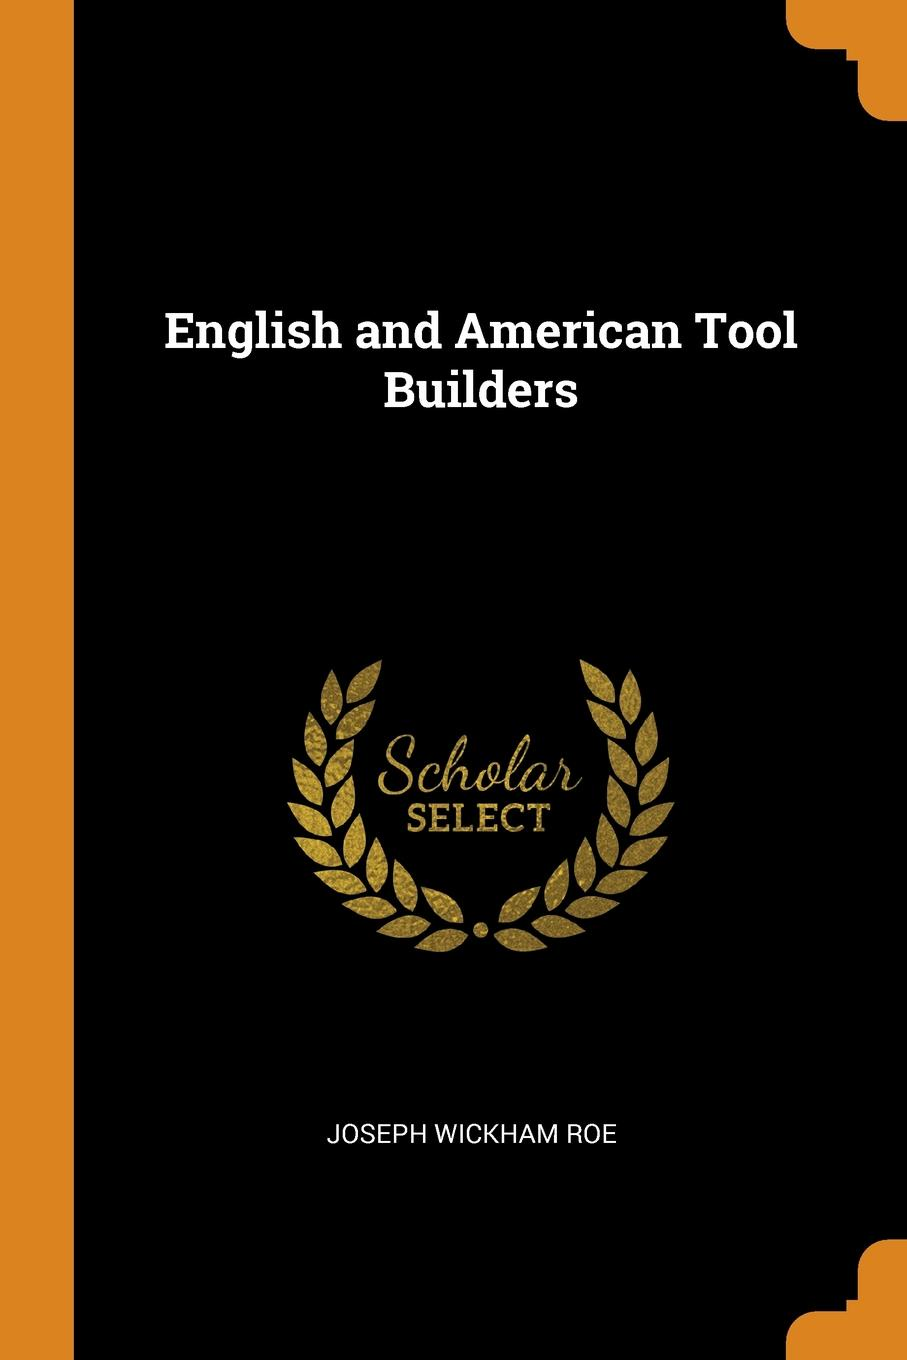 Joseph Wickham Roe. English and American Tool Builders